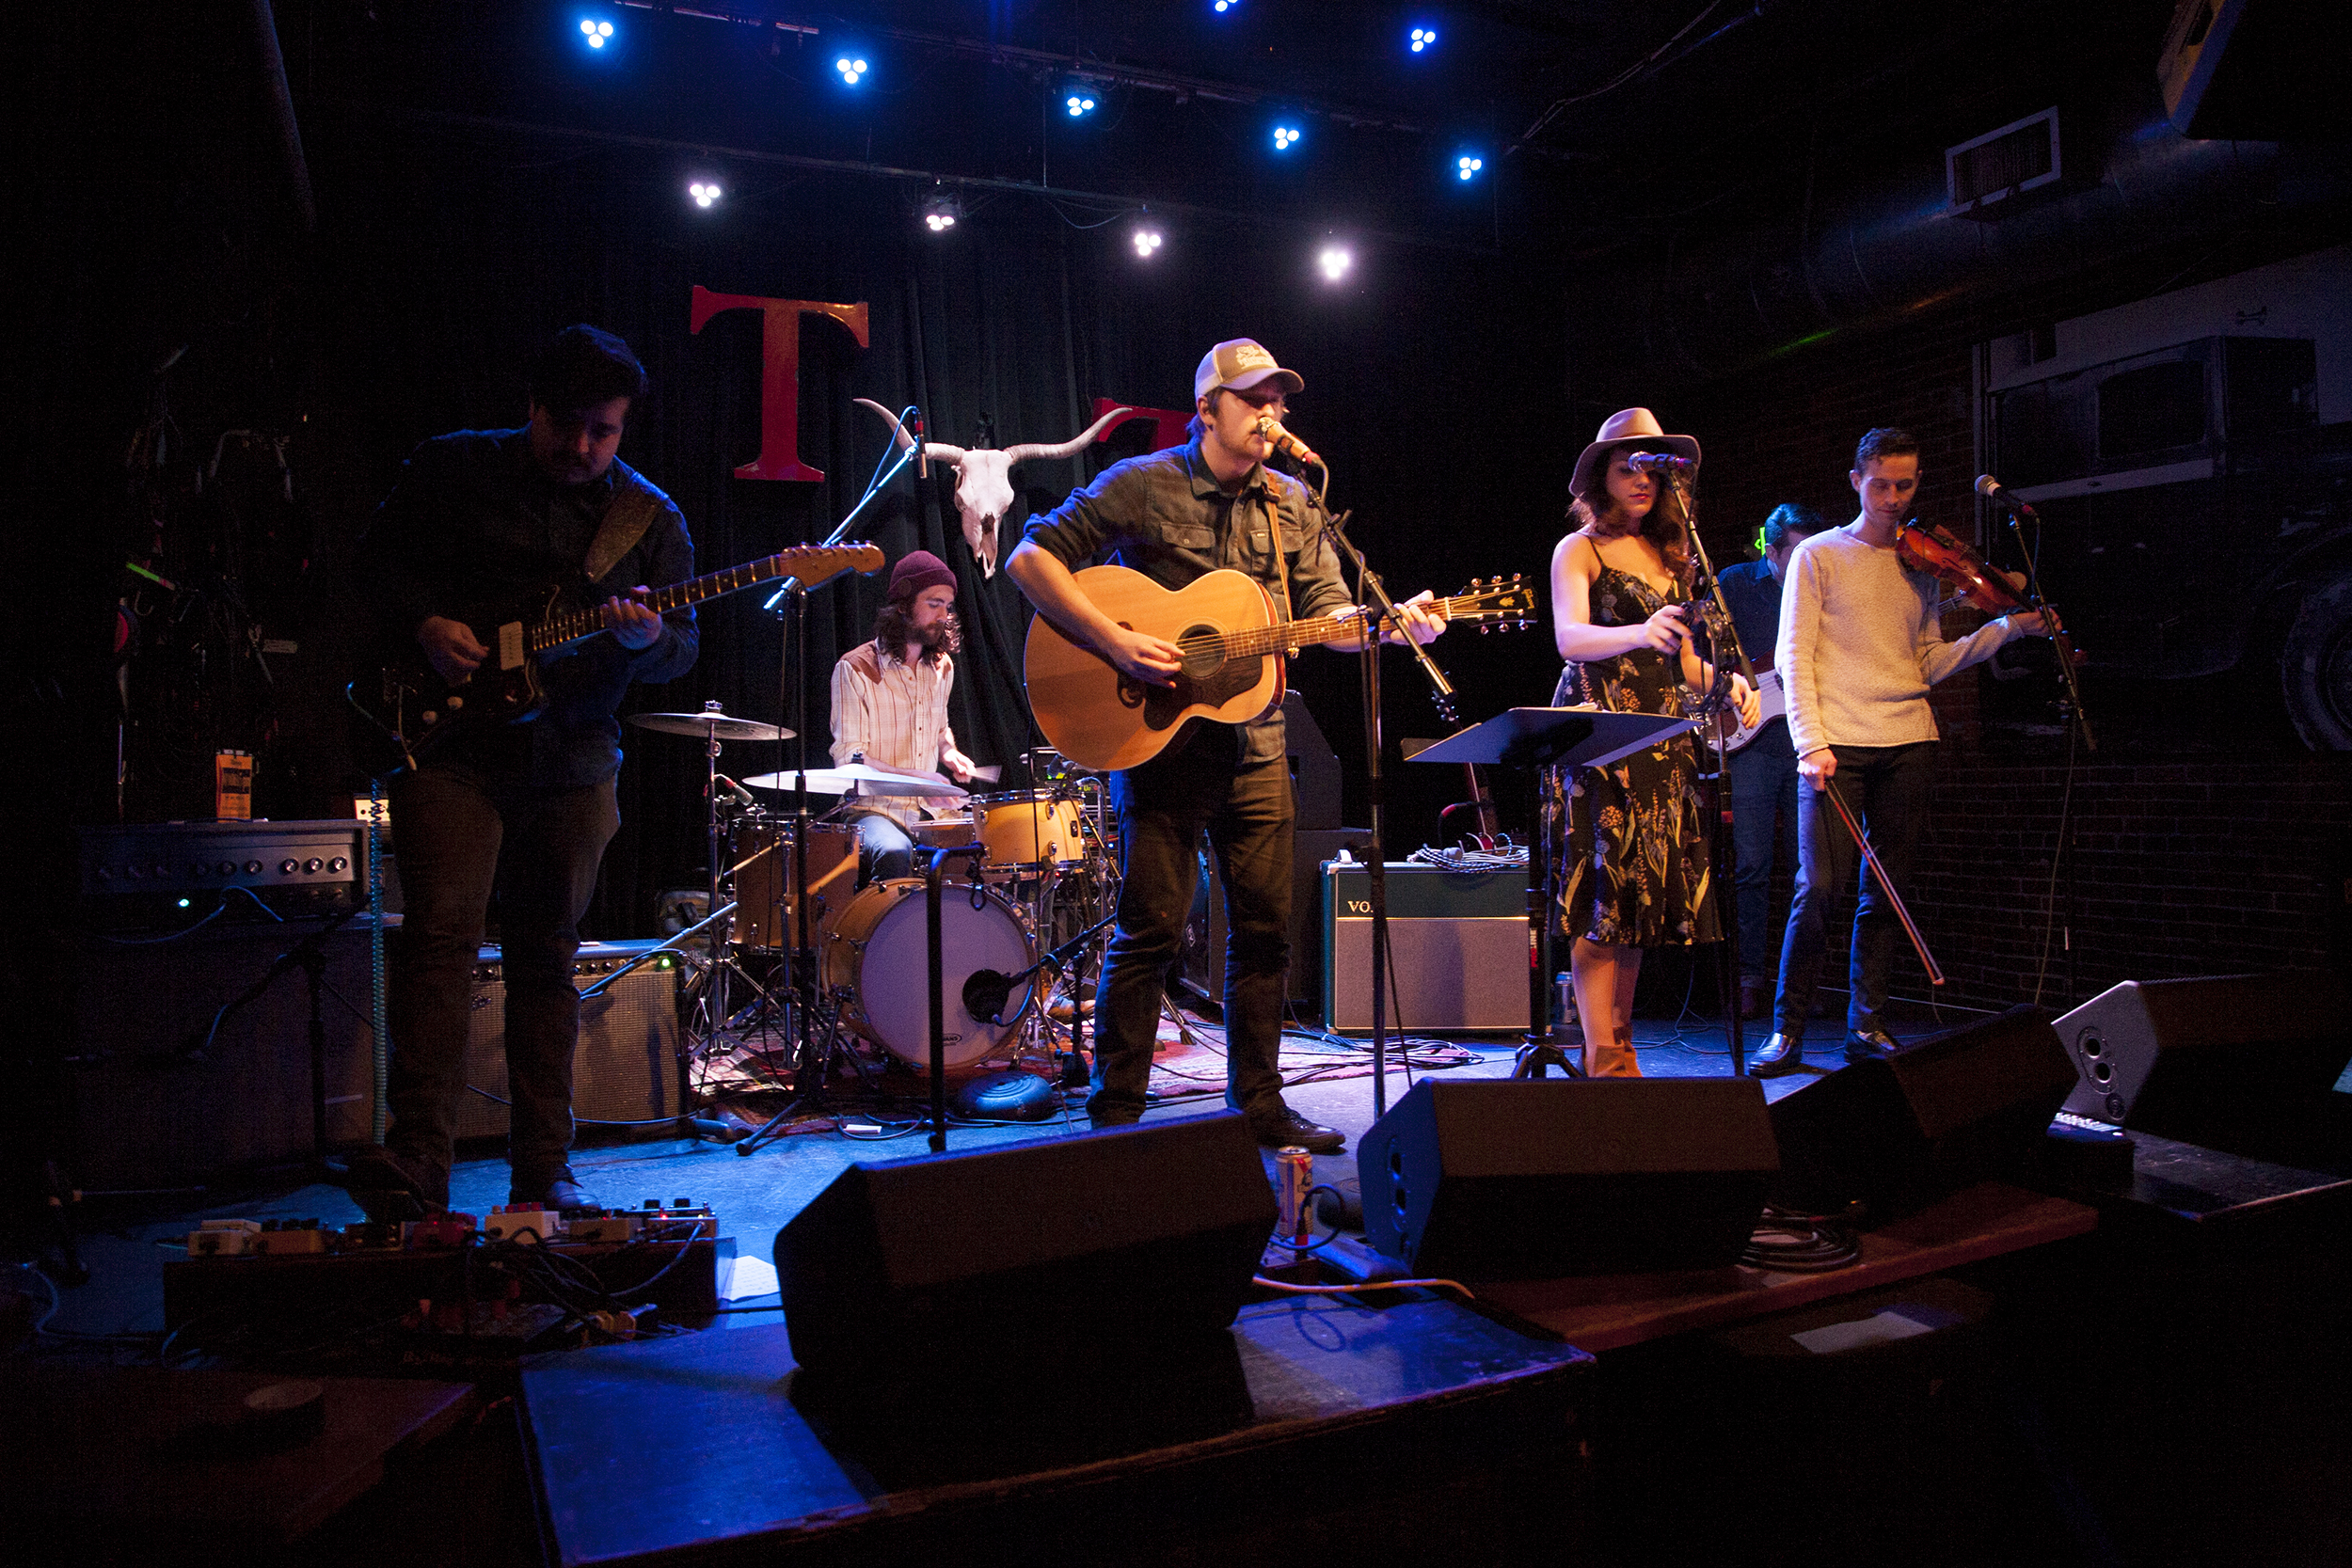 Old Cost Live at Tractor Tavern